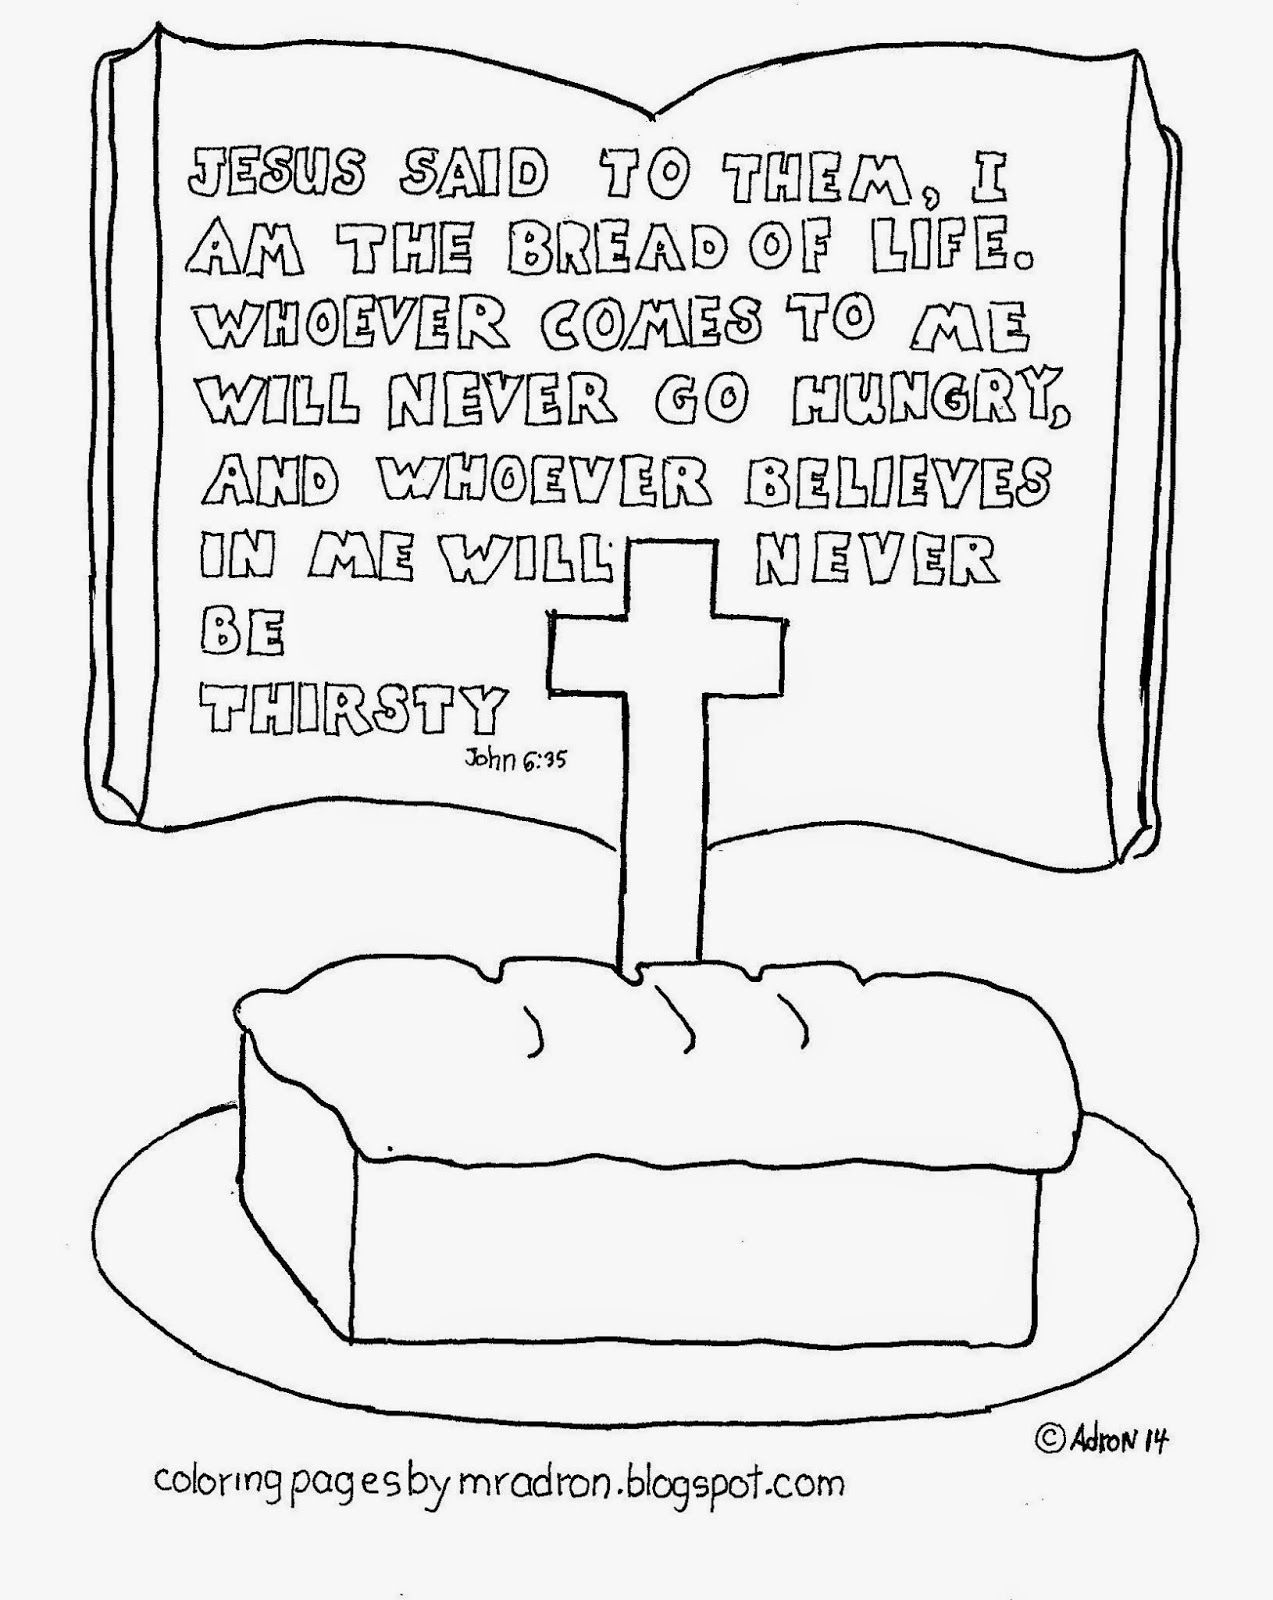 Coloring Pages For Kids By Mr Adron I Am The Bread Of Life